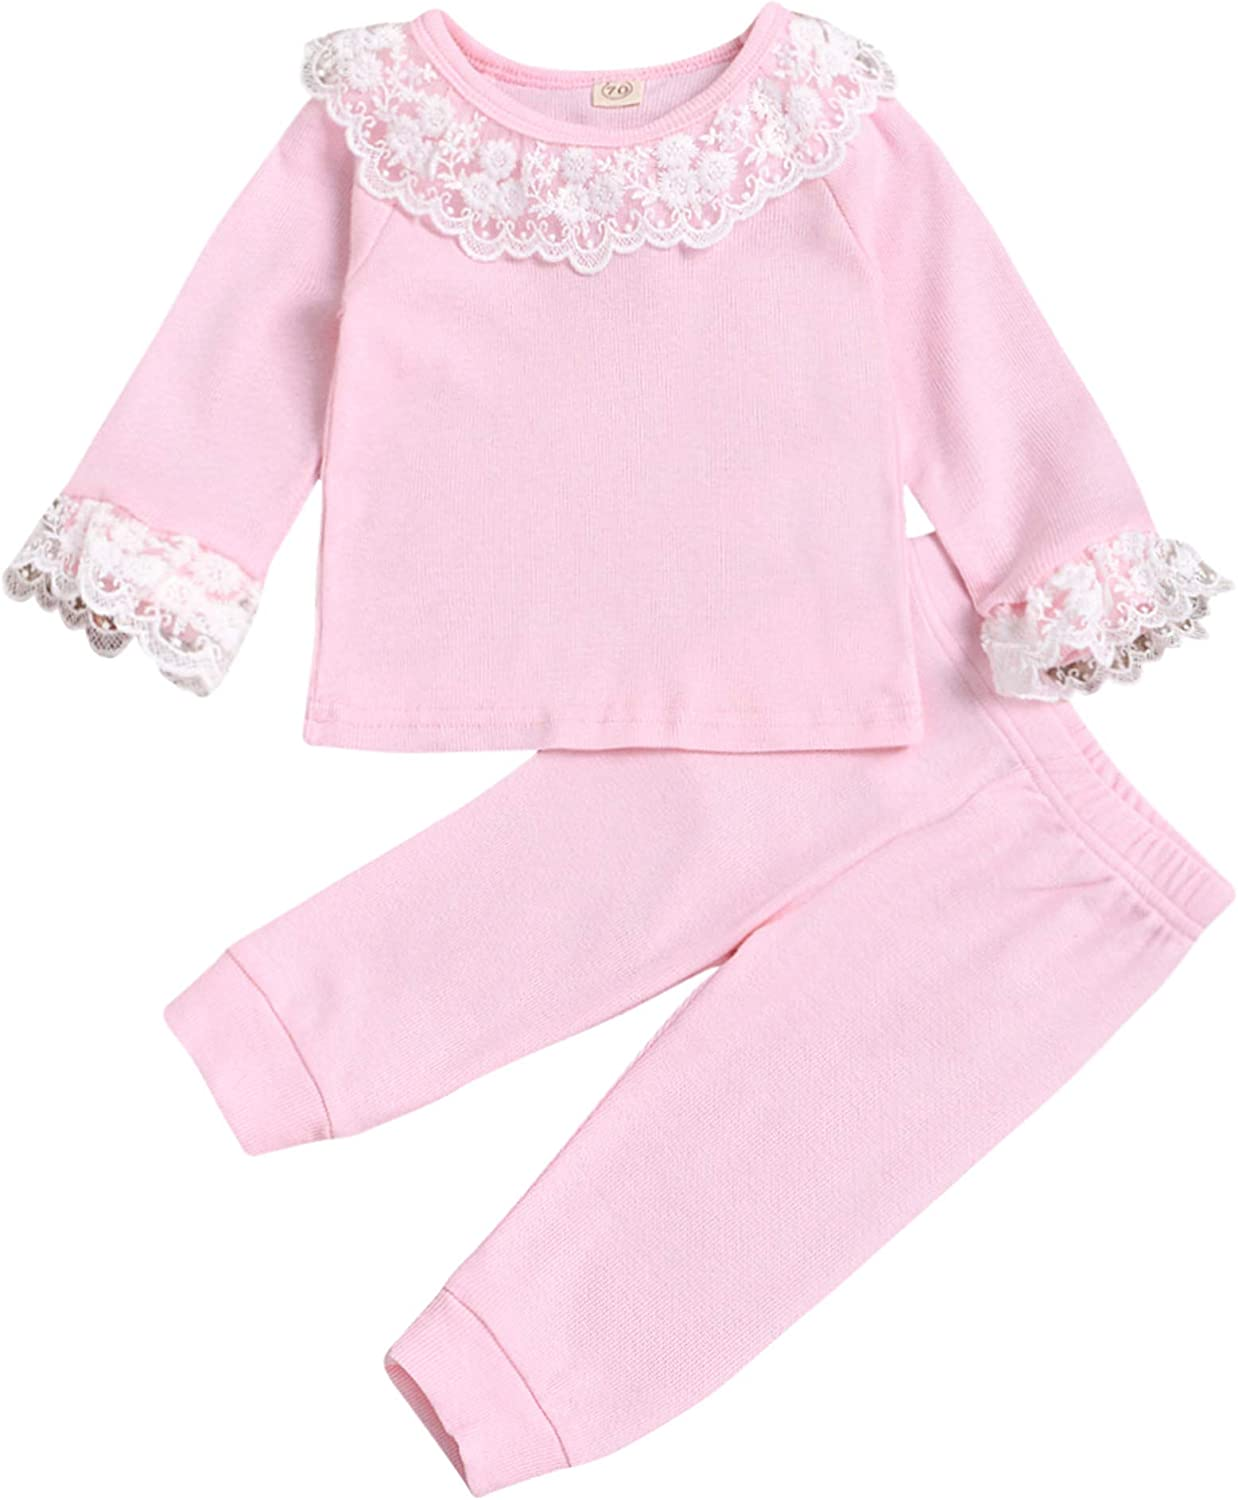 Limited time for free shipping 0-24M Lace Trim Ranking TOP15 CollarSleeve Long Pants T-Shirt Sleeve Win